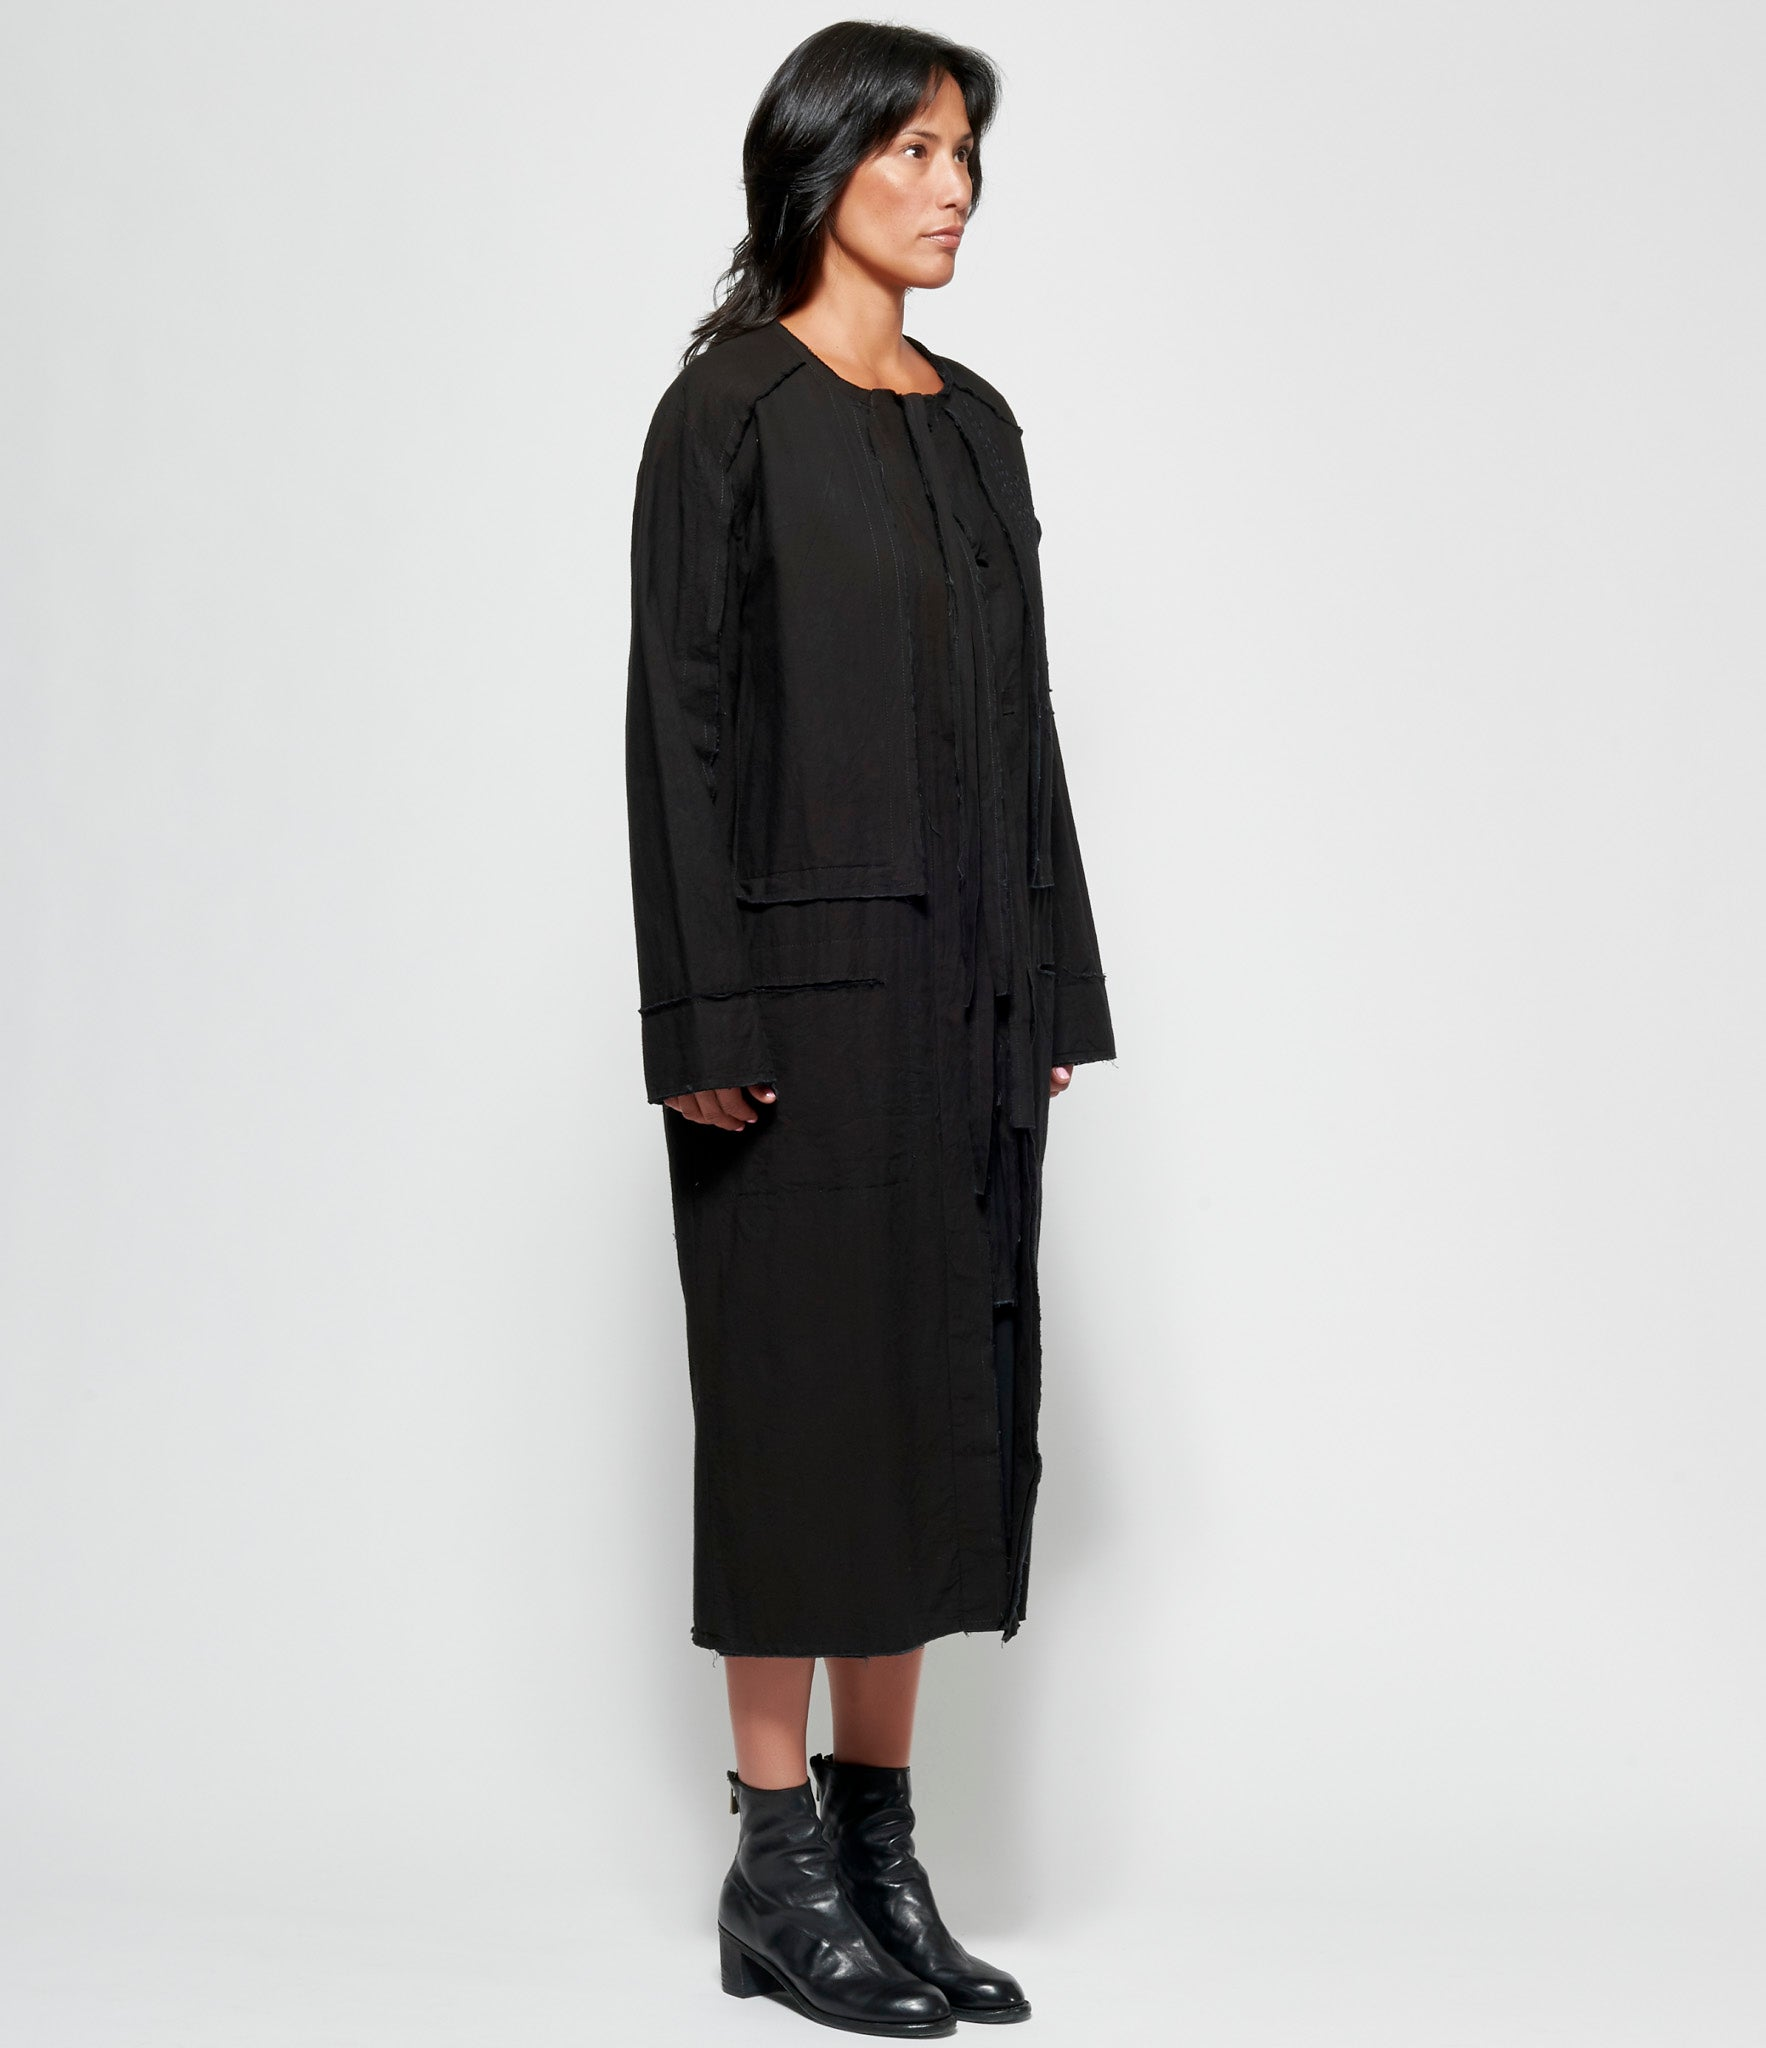 Replika Stitched Black Coat